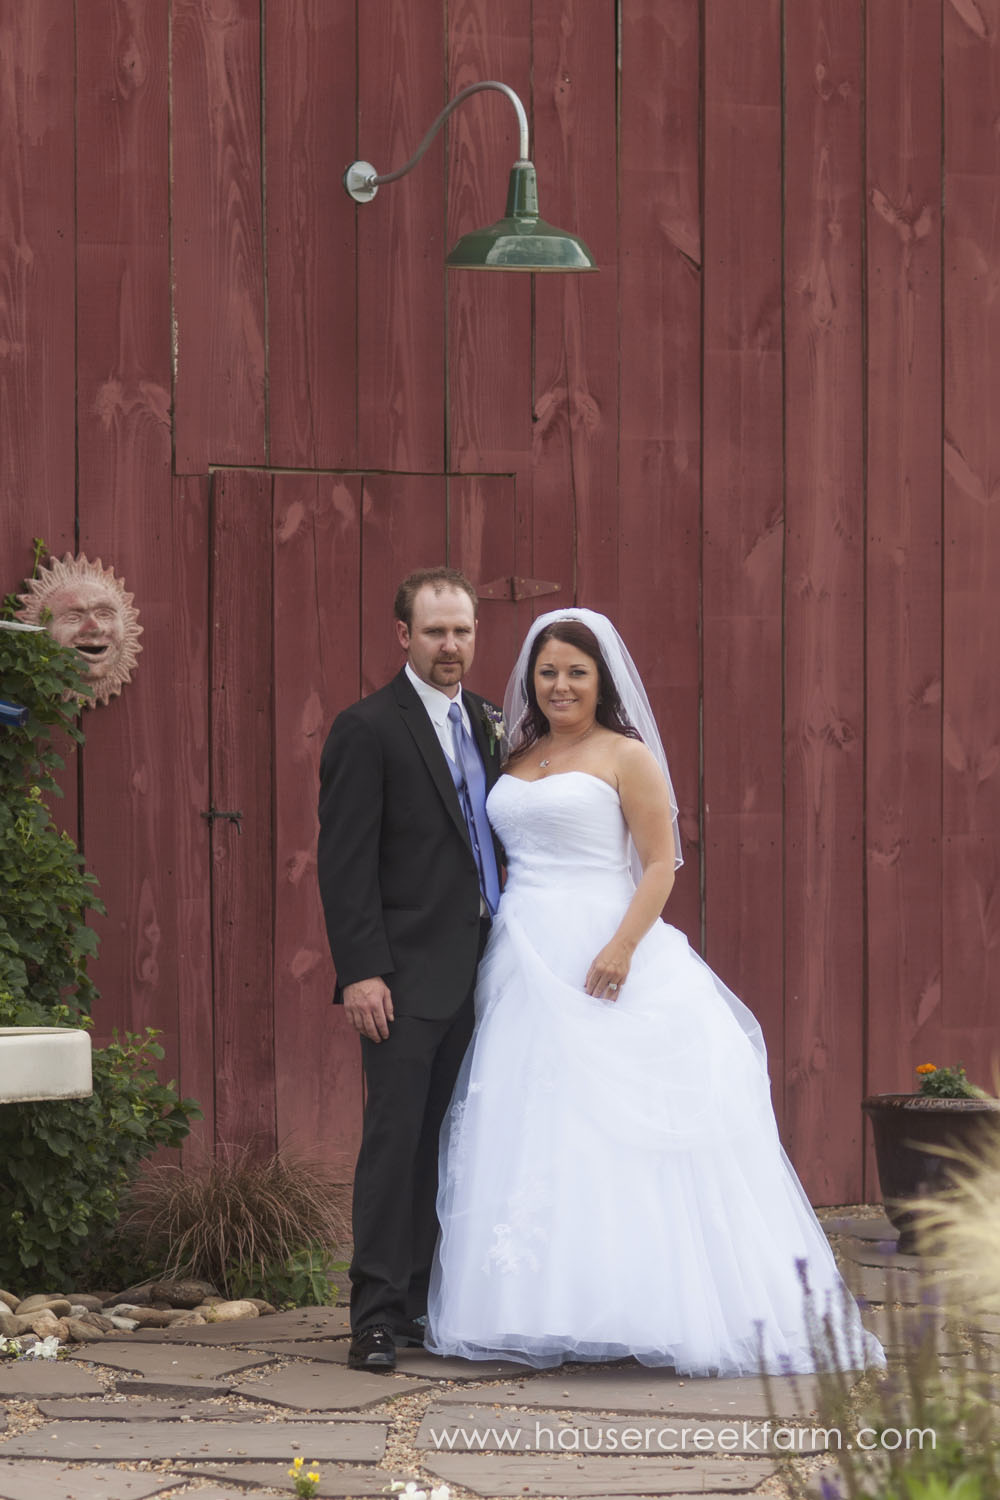 bride-and-groom-farm-wedding-a-photo-by-ashley-0845.jpg